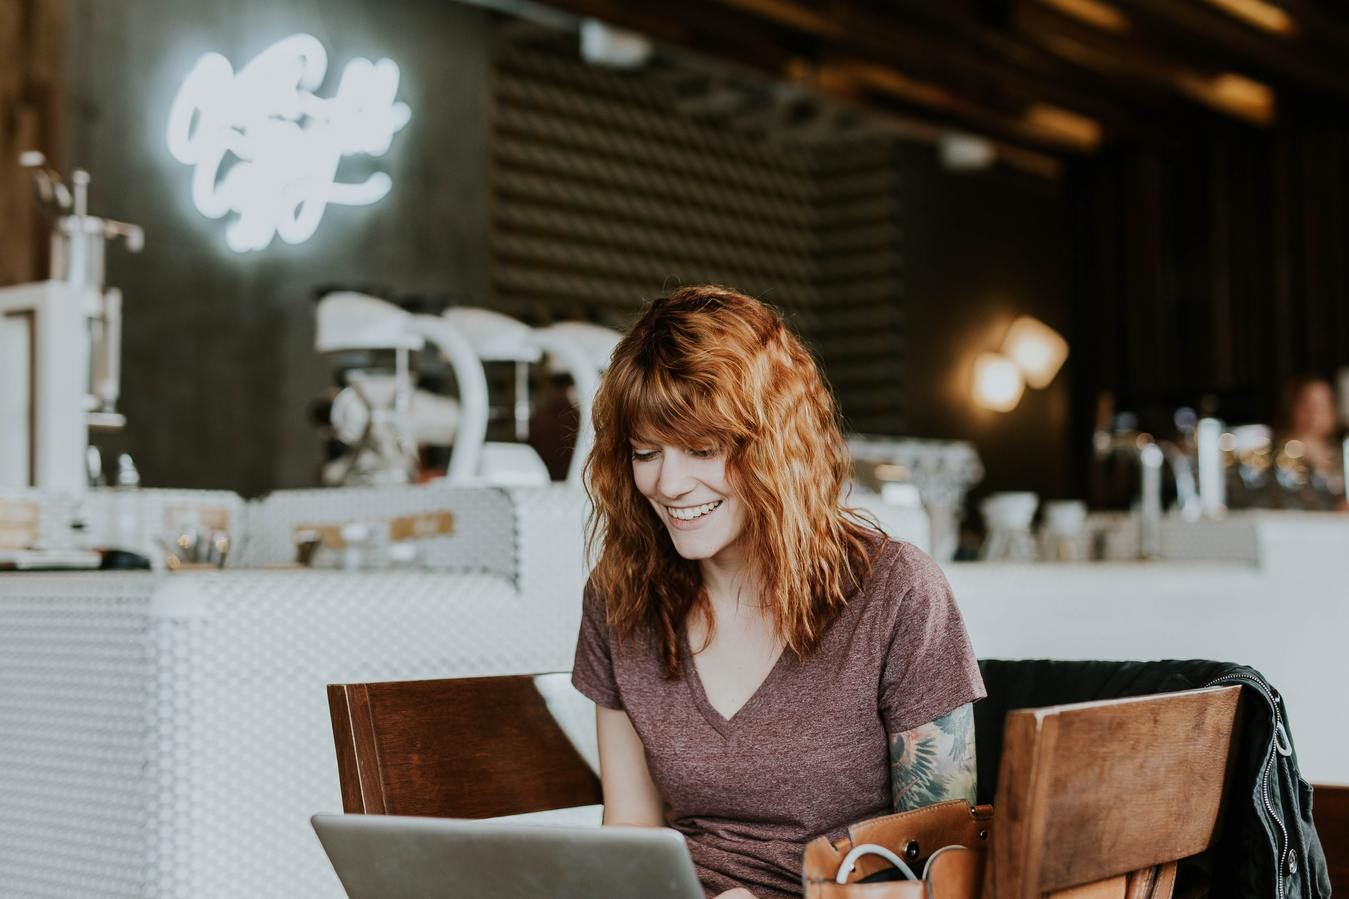 Girl smiling on a laptop in a cafe